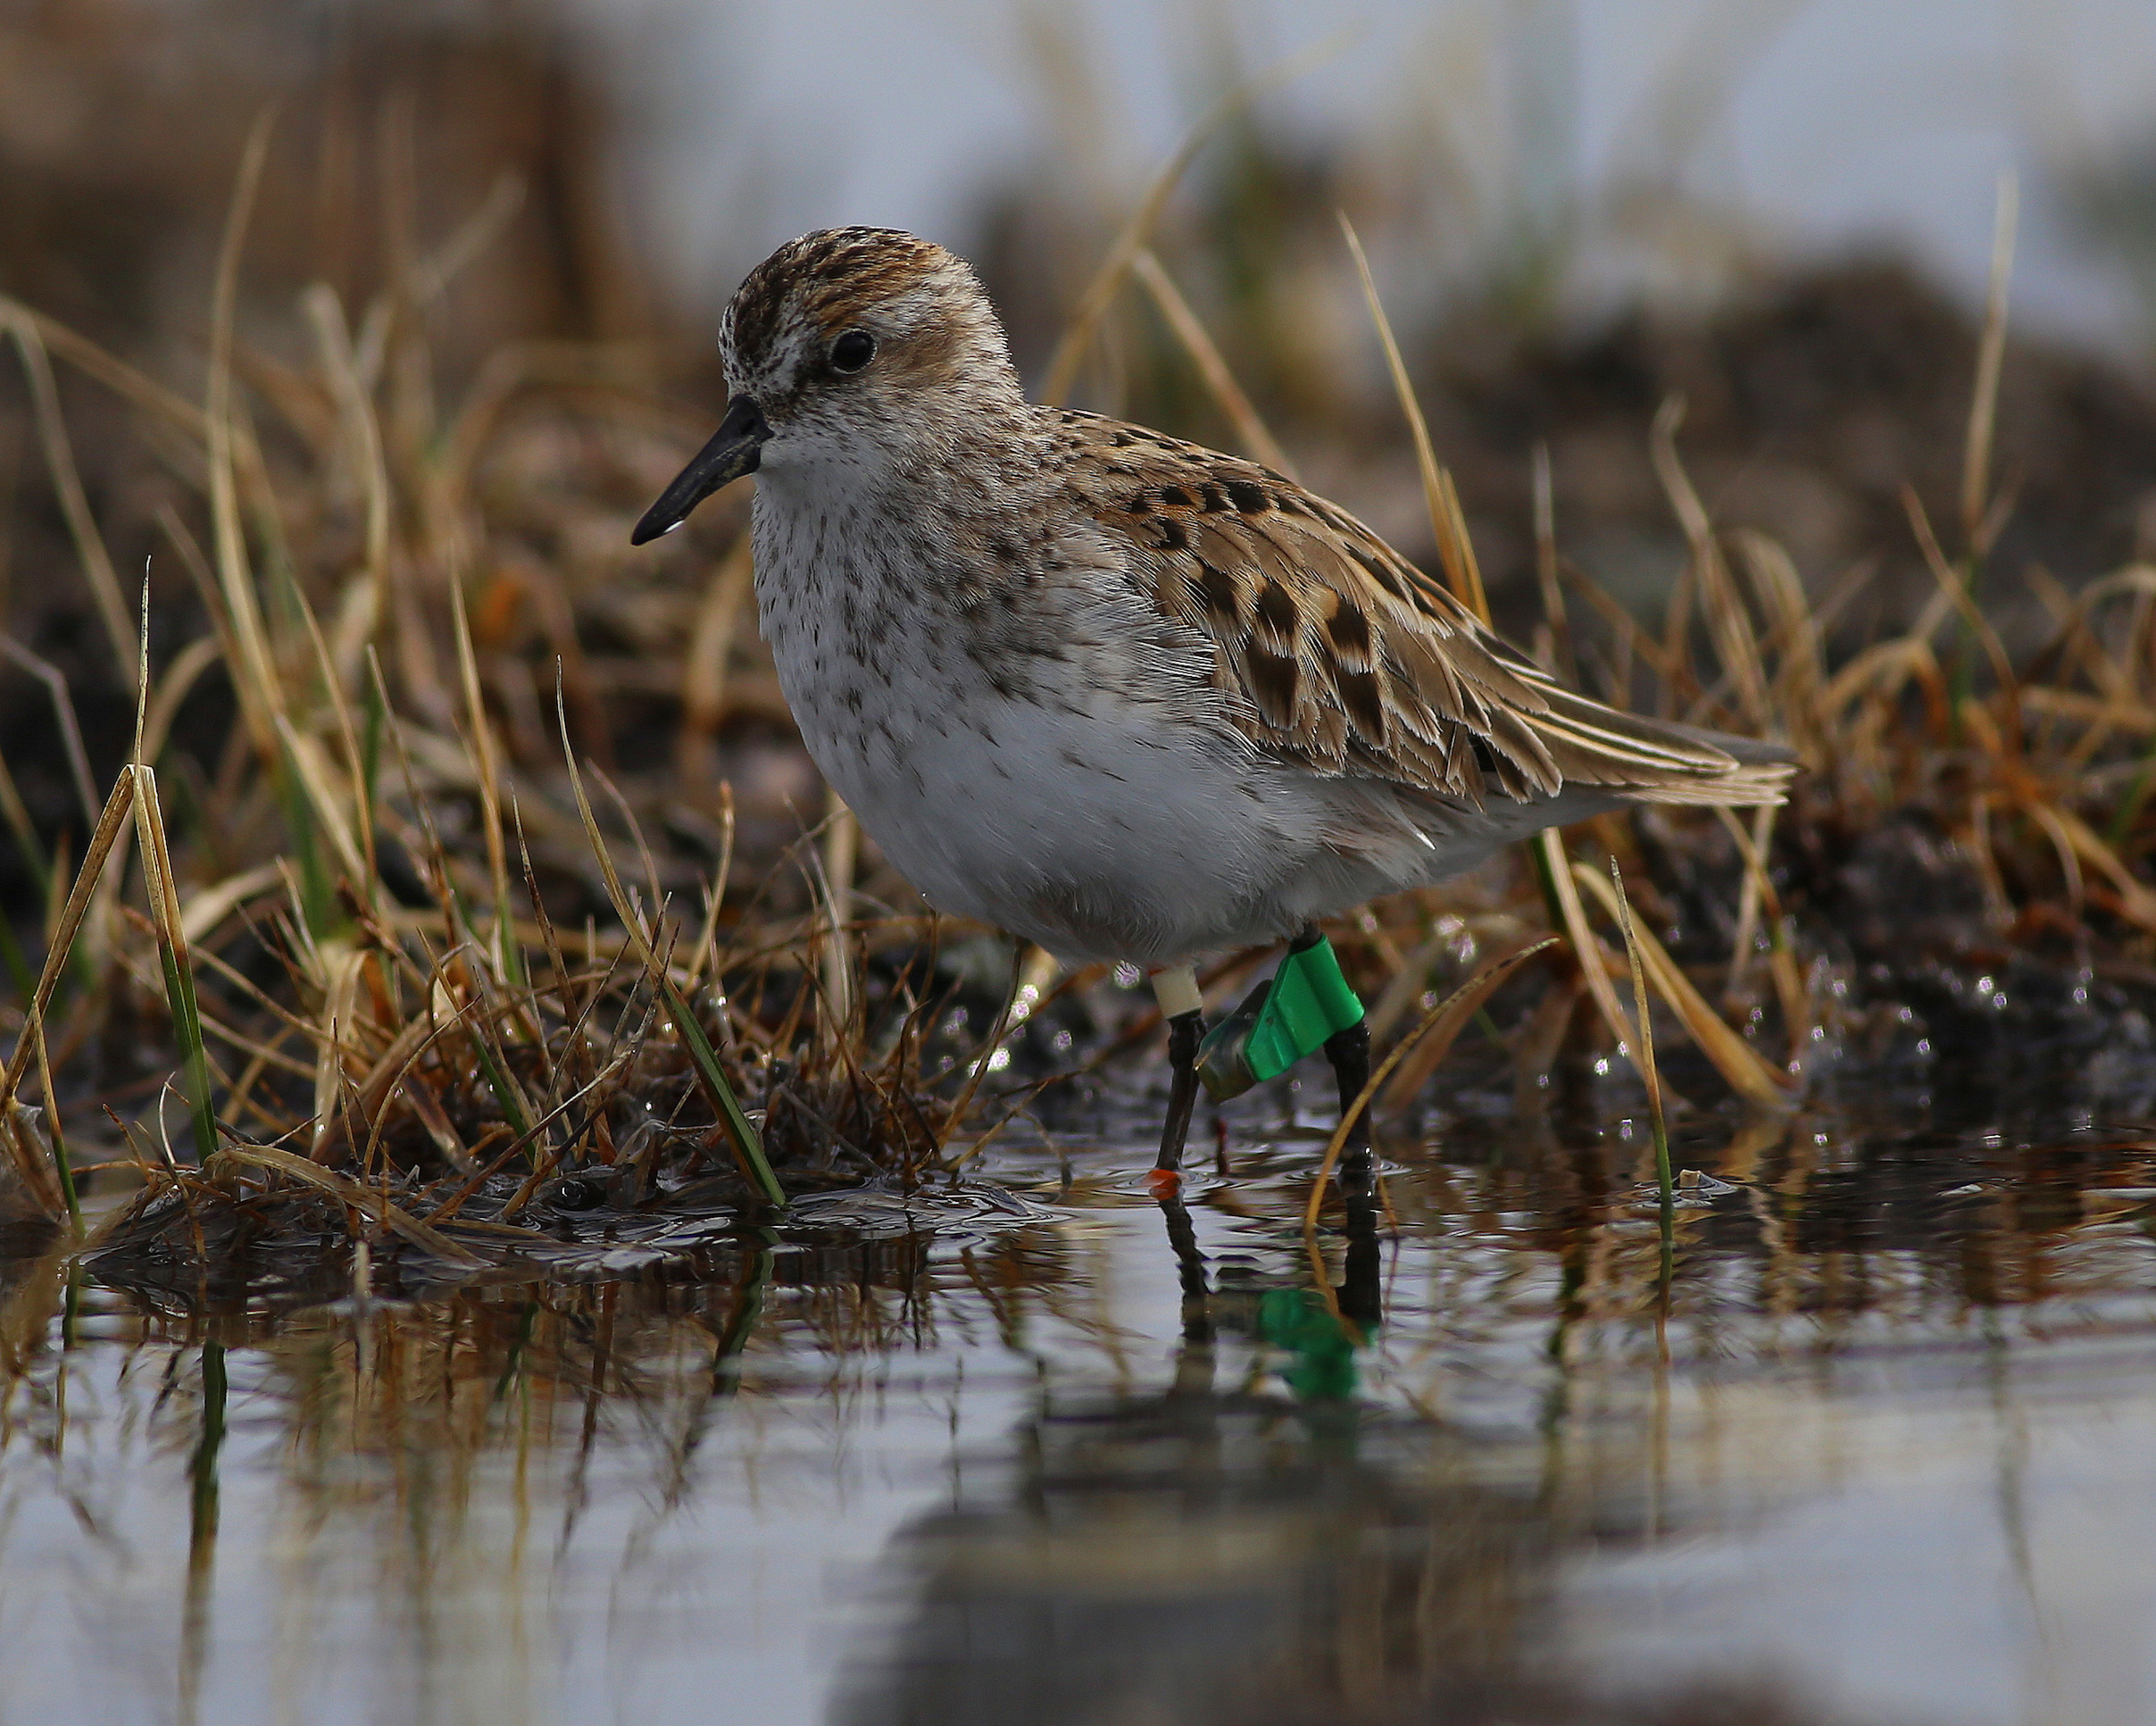 Scientists have begun studying bird migration cycles after noticing a mysterious population decline occurring with the Semipalmated Sandpiper.